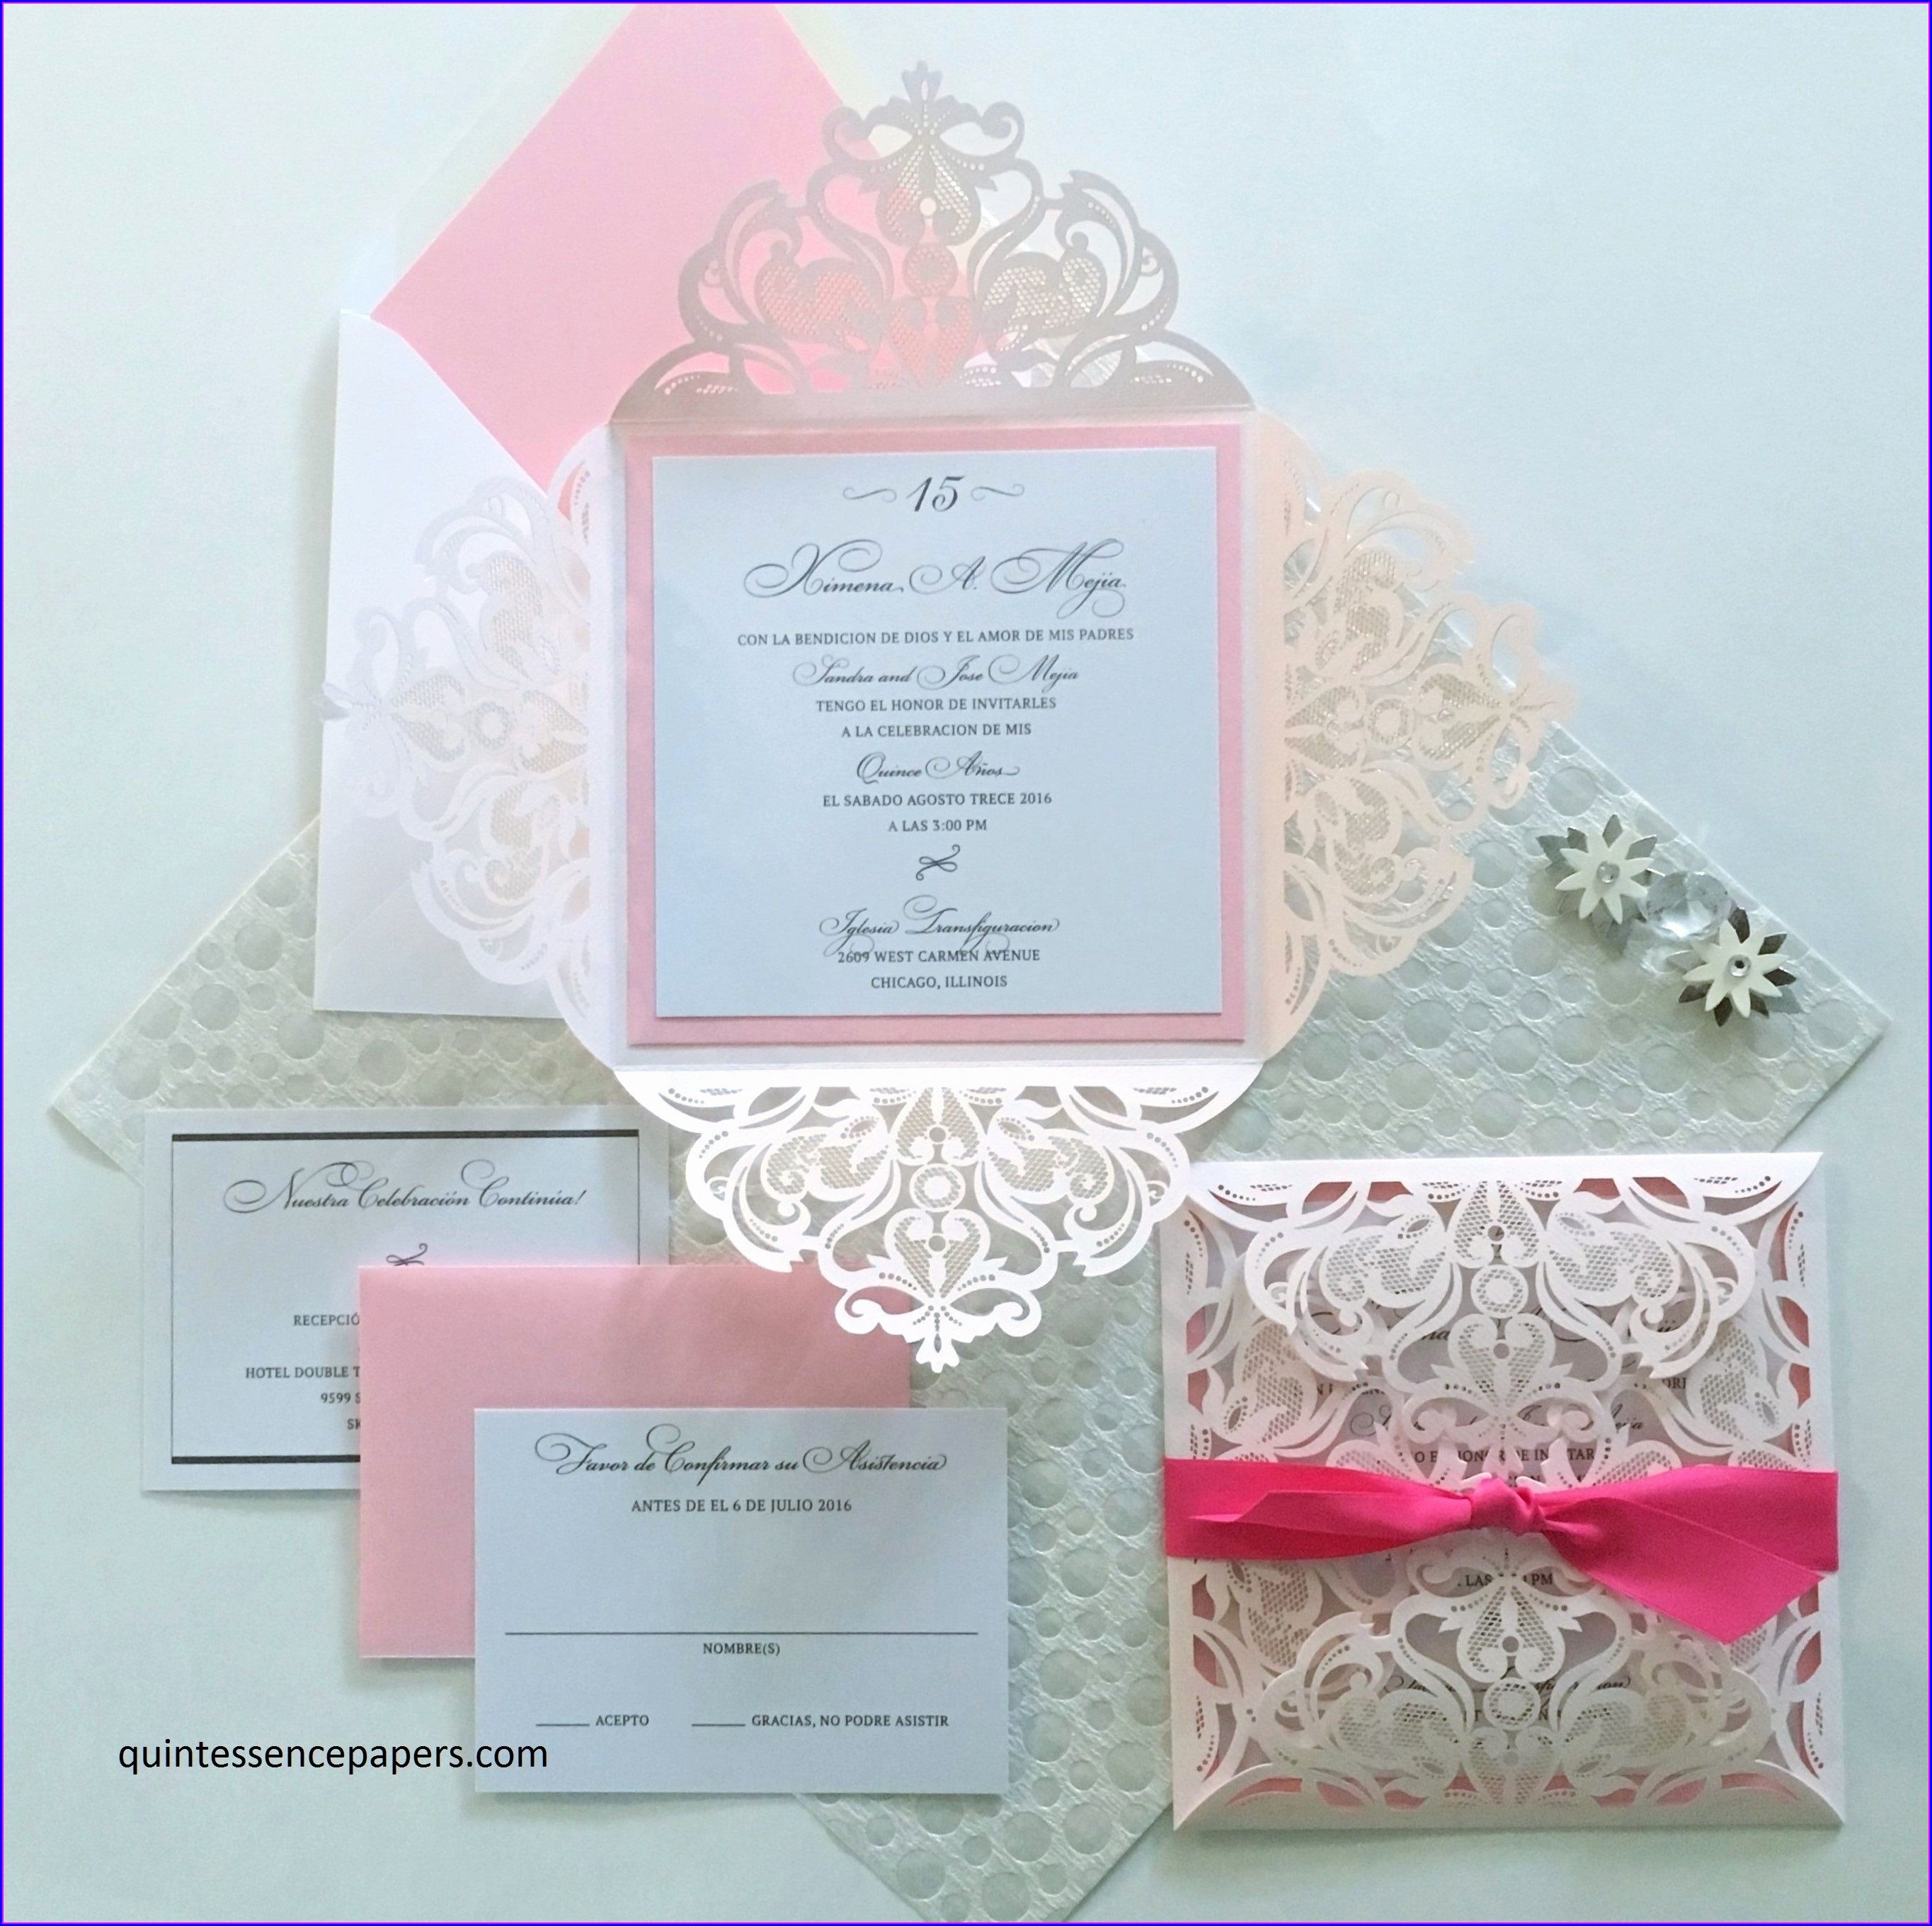 Quinceanera Invitation Wording In English